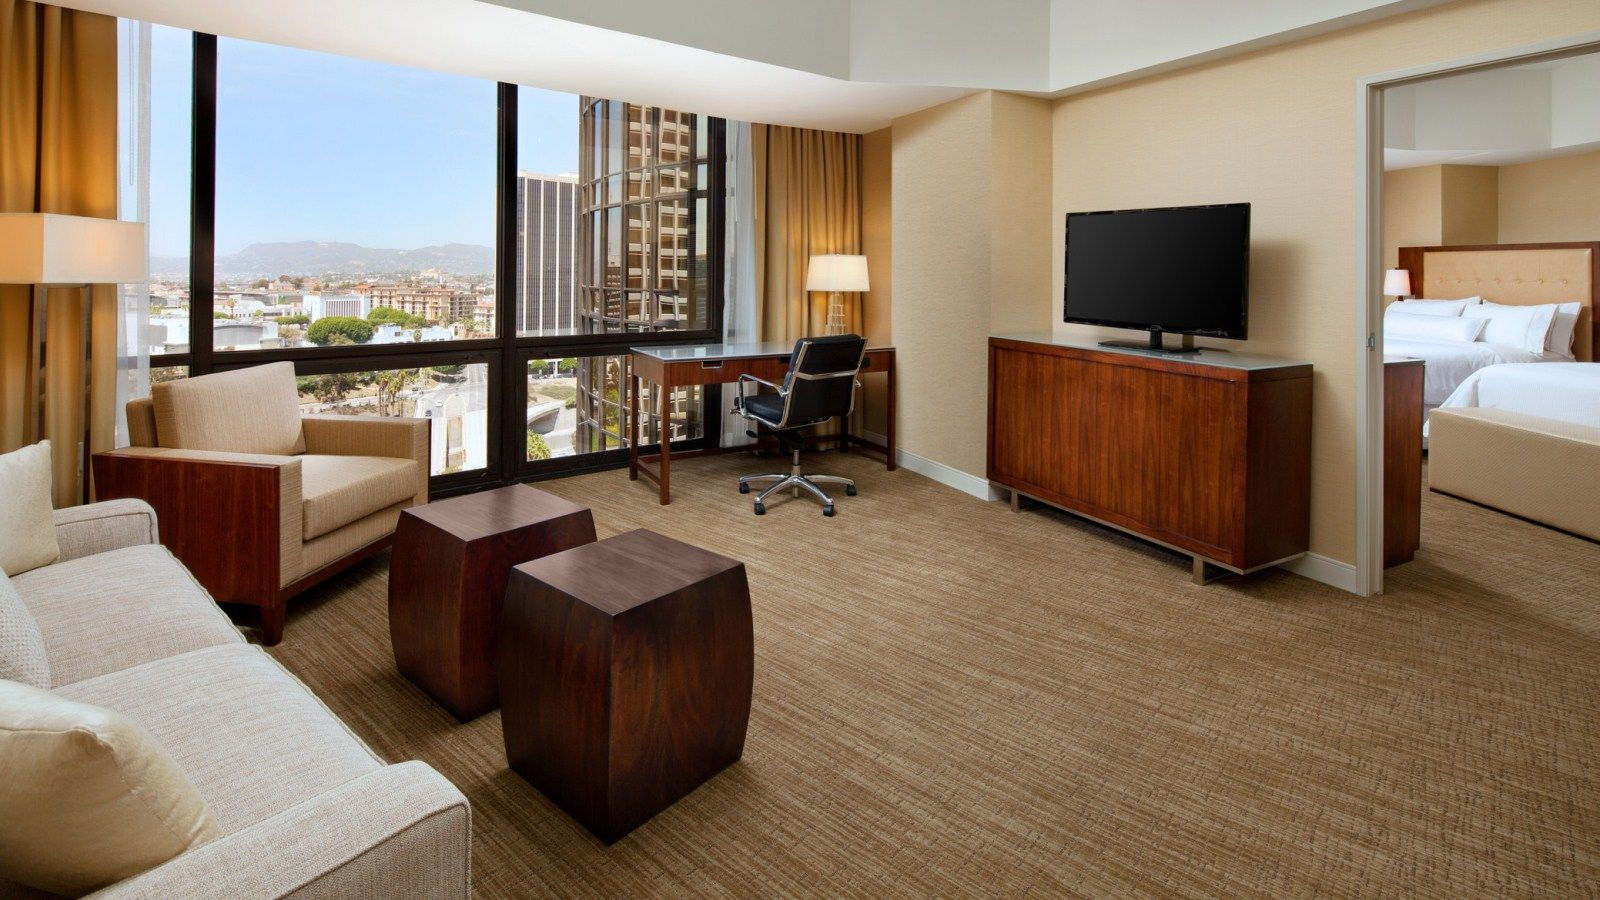 The Westin Bonaventure Hotel & Suites, Los Angeles - Accommodations